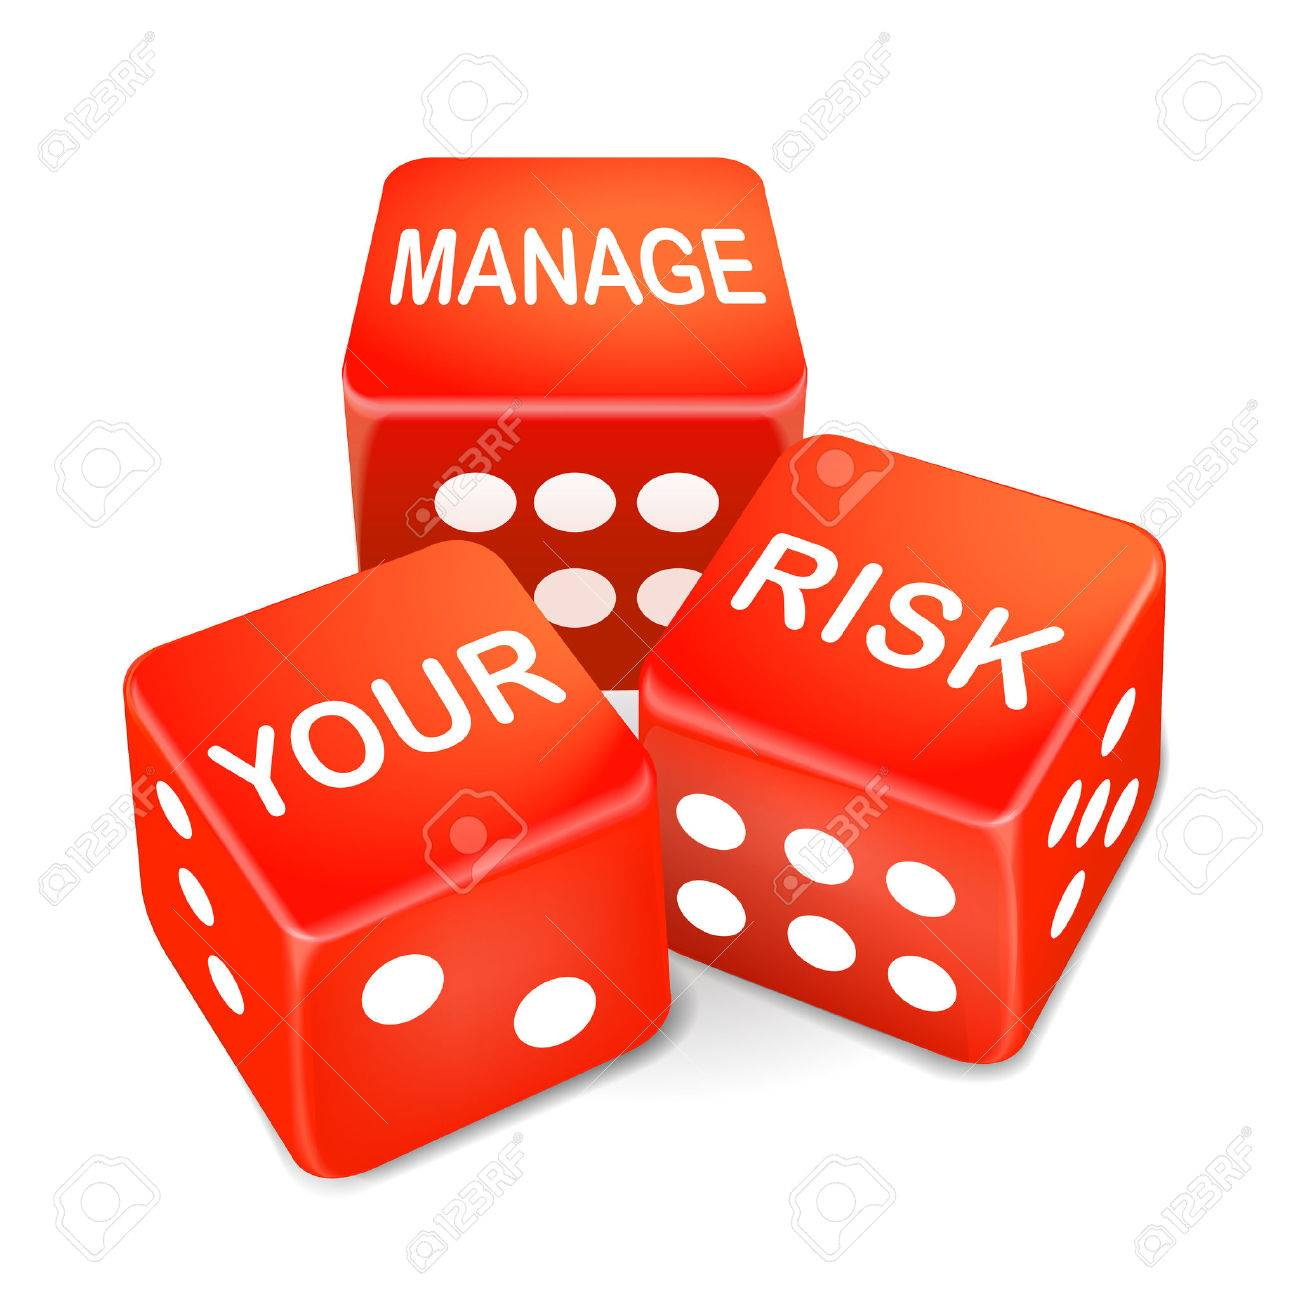 manage your risk words on three red dice over white background - 30594122